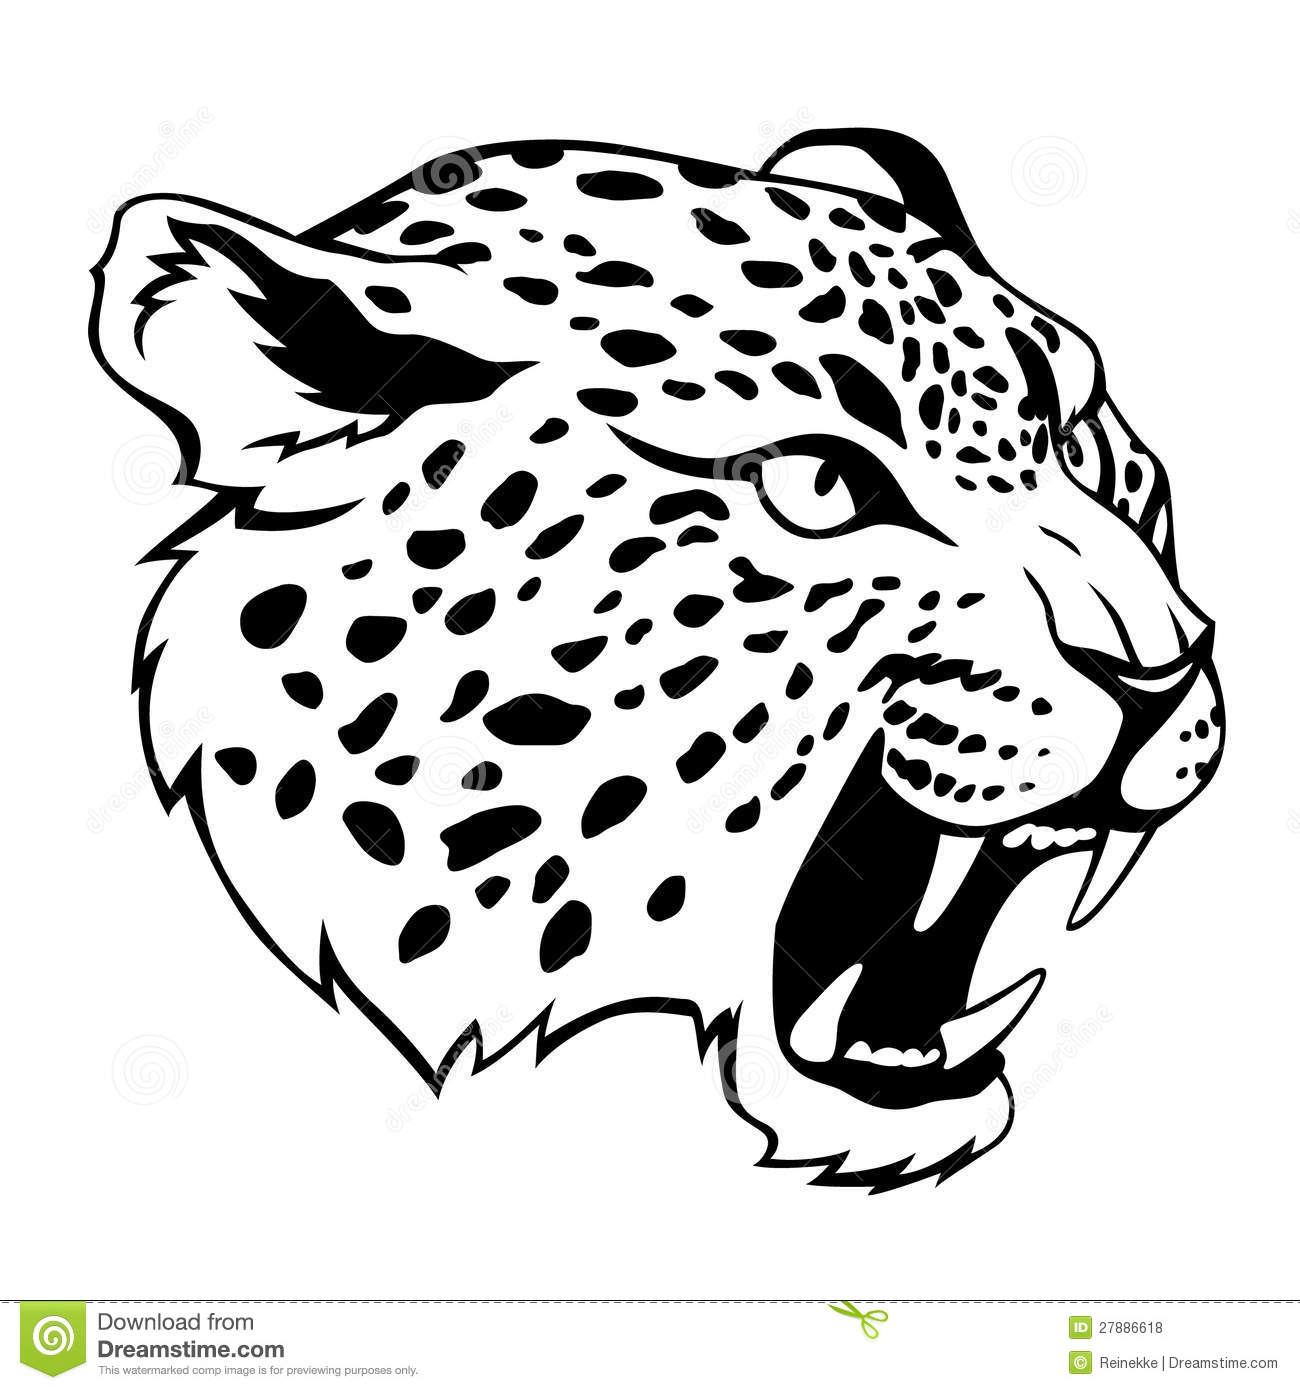 Stylized Jaguar Head Black Illustration